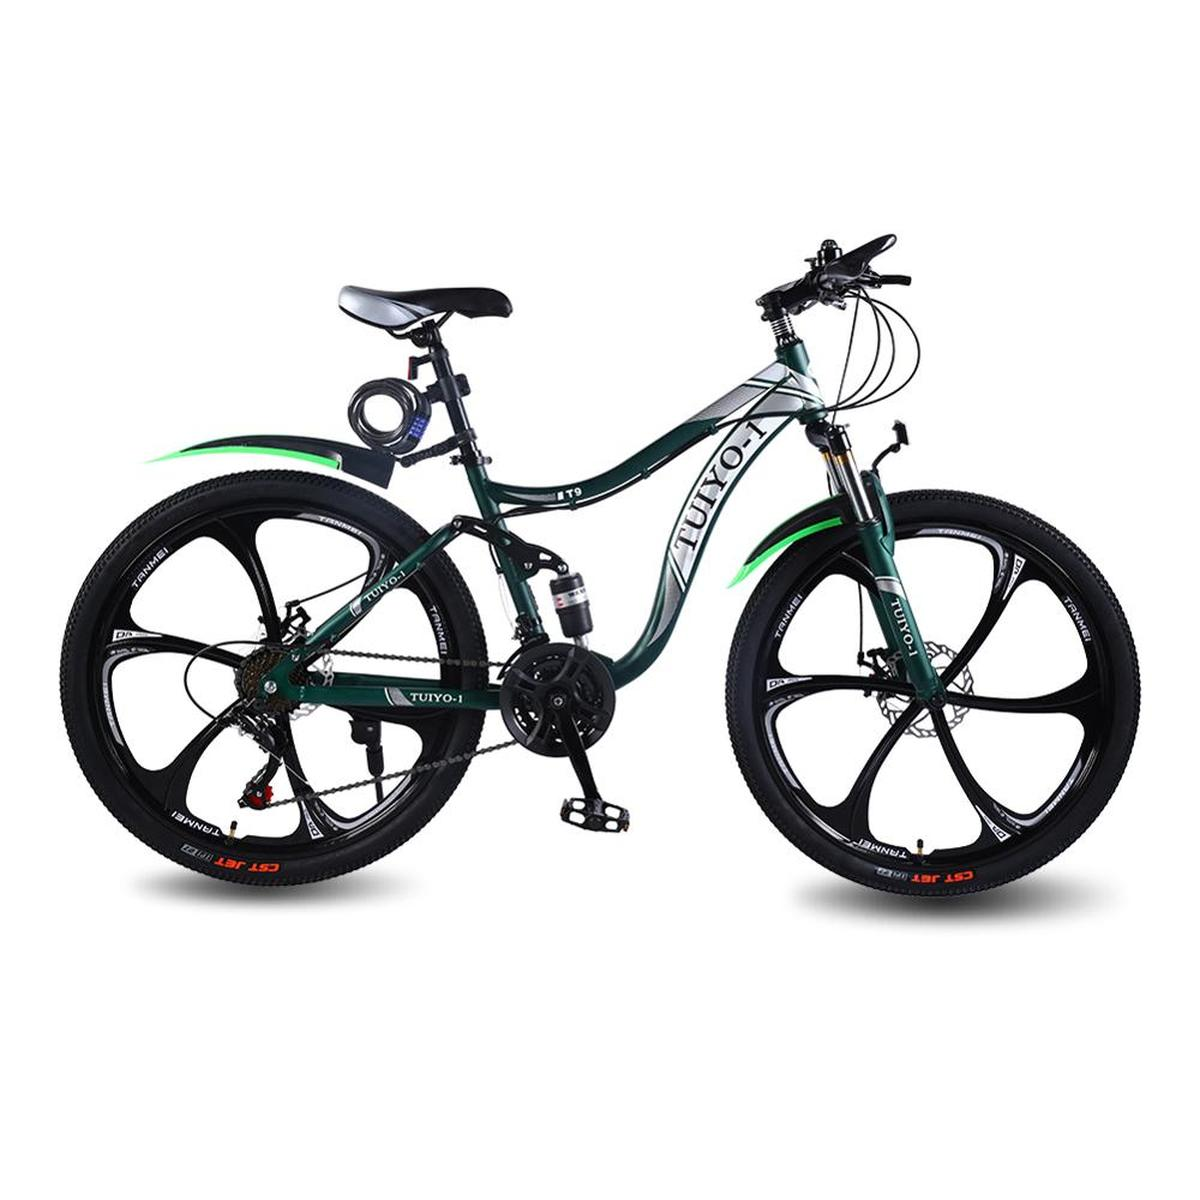 TUIYO T9 21 Speed 26 Inches Mountain Bike Carbon Steel Frame Road Bike Bicycle With Professional Bike Pedals For Men Women